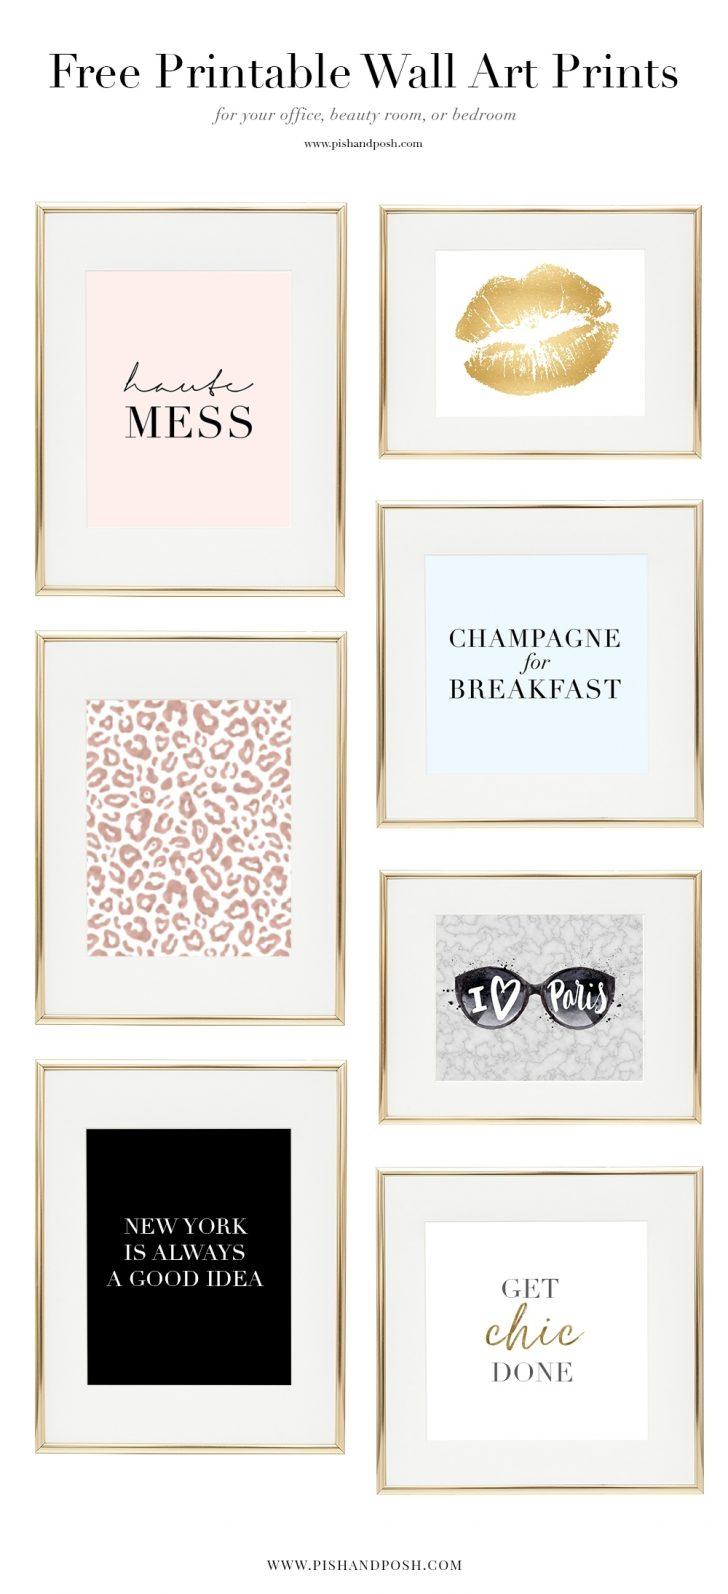 Free Printable Wall Art Prints